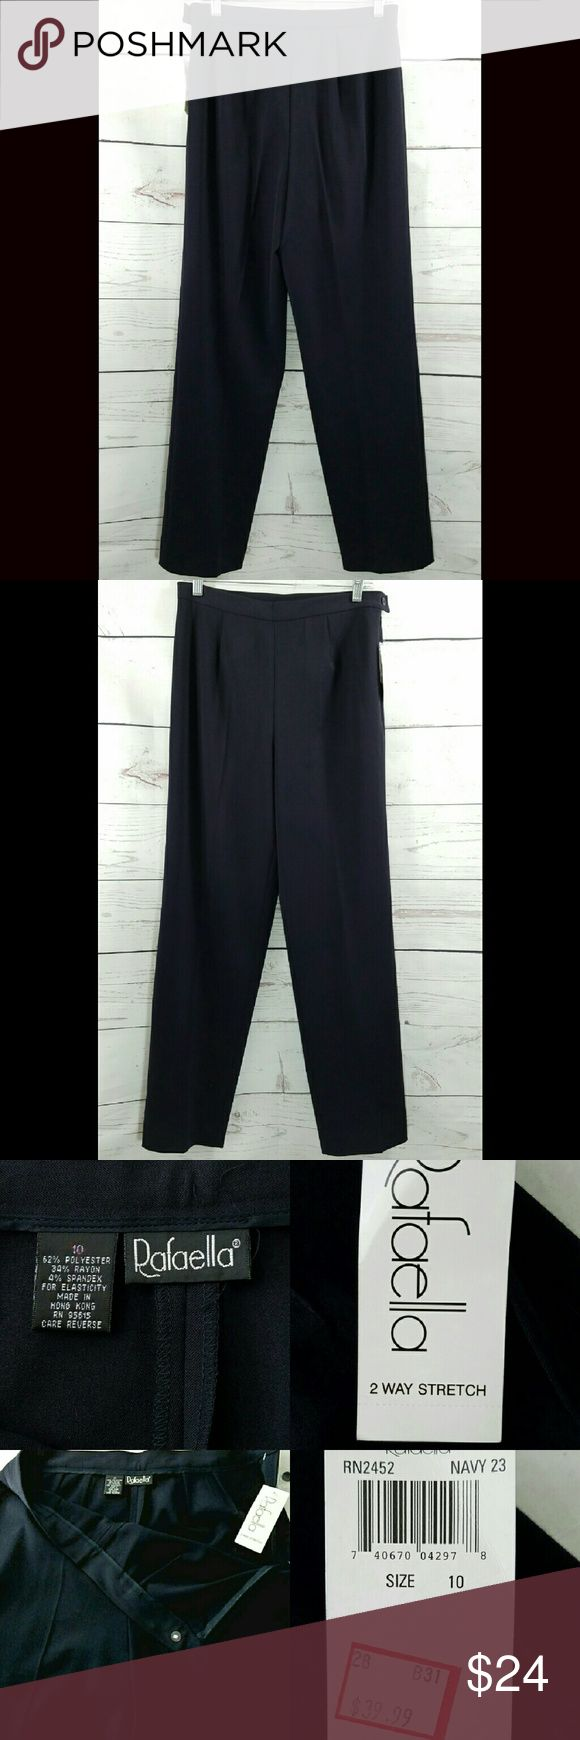 Rafaella Blue Pleated 2 Way Stretch Dress Pants Womens Rafaella Navy Blue Pleated 2 Way Stretch Dress Pants Size: 10 (30x30) NWT  (To see full size pictures, go back to main pictures.)  About this item:  Brand New Side Zip & Button Navy Blue  Size: 10 Waist: 30 Hips: 40 Inseam: 30 Rise: 11.5 Rafaella Pants Straight Leg